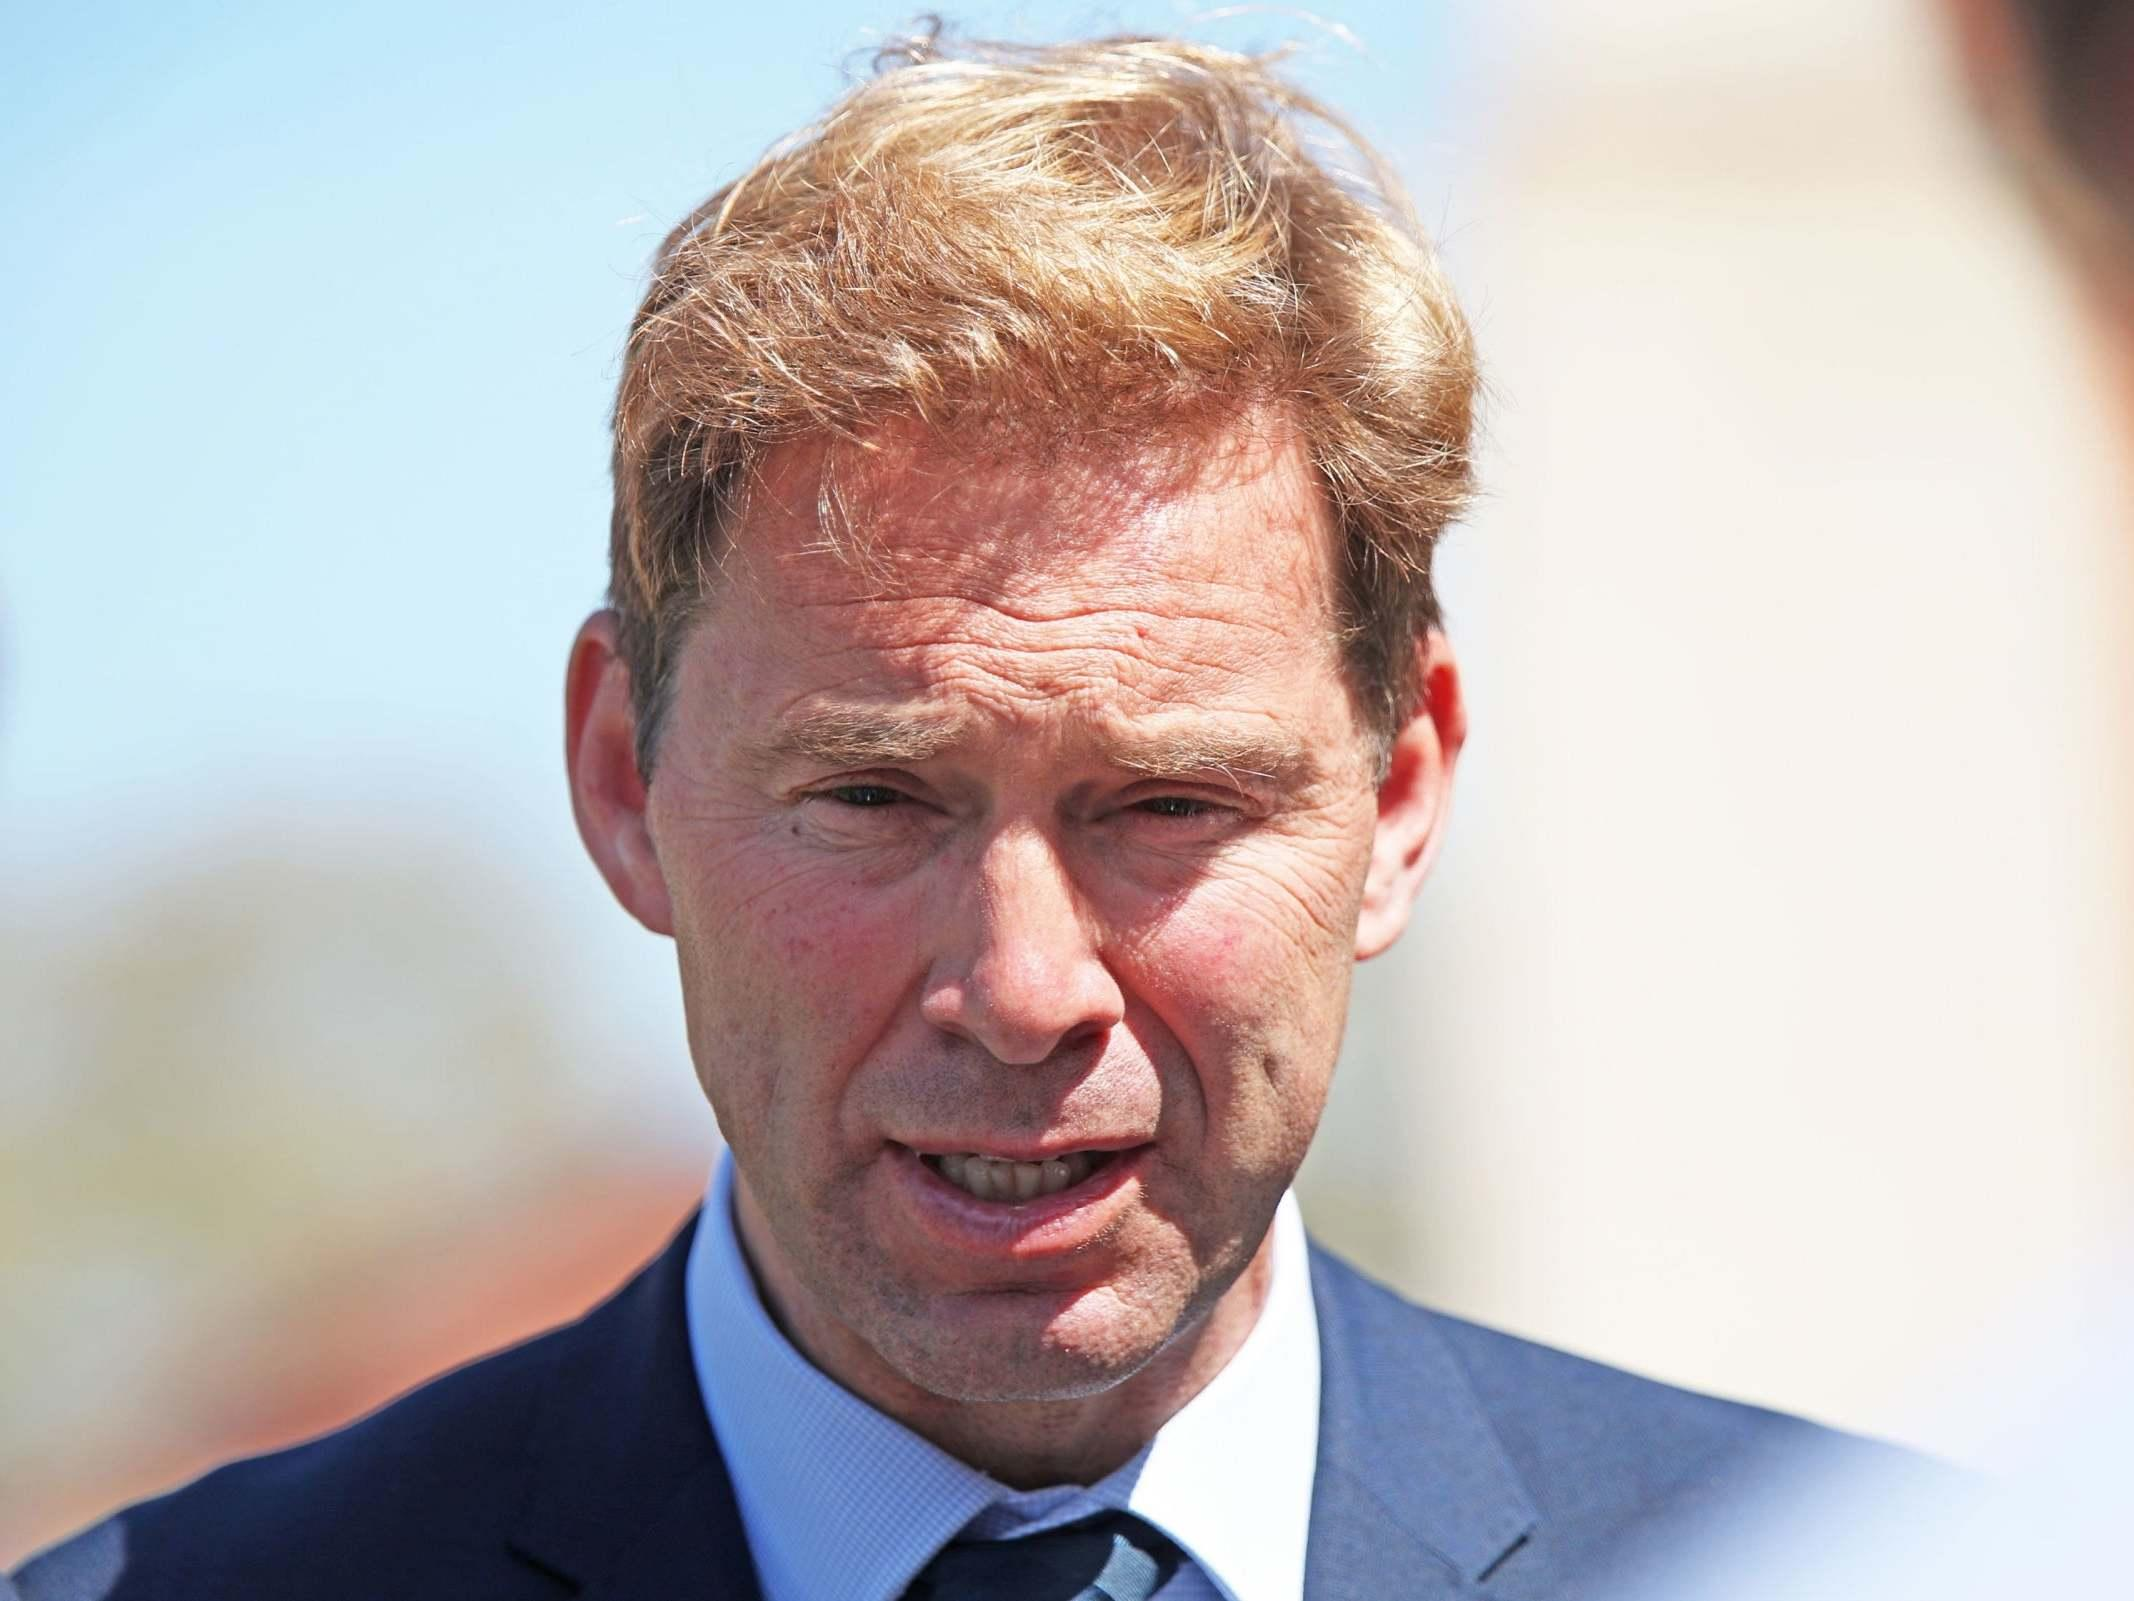 "Boris Johnson should ""dial down"" the rhetoric over Brexit, a former Conservative minister has warned amid warnings the government is on collision course with Brussels.Tobias Ellwood, who was sacked by the new prime minister, admitted it was a ""shock"" to lose his job this week at the Ministry of Defence, but said it was what politicians sign up for when the enter the ""brutal game"". The former army officer, who was hailed as a hero for his actions during the Westminster terror attack, had been highly critical of the prospect of a no-deal Brexit - something Mr Johnson's administration has insisted it could pursue. Speaking to BBC Radio 4's Today programme, Mr Ellwood also said a general election after Brexit was the ""reset button"" needed by the Conservatives in order to get through vital legislation in the House of Commons. ""The prime minister has one key objective and that is to conclude Brexit,"" he said. ""I think the country is Brexit fatigued and there's also been a loss in trust in politics, and it wants leadership, and there's absolute clarity of where this prime minister wants to go. Asked about the rhetoric being used by Mr Johnson over Brexit, such as the ""abolition"" of the backstop, he replied: ""If my one first bit of humble advice might be is let's step back from the rhetoric on the campaign trail.""Pressed on whether Mr Johnson should ""dial down the rhetoric"", Mr Ellwood replied: ""No, I think everybody should. We should allow and give space for a deal to be considered, get back to the drawing board, work out what could be advanced from the withdrawal agreement itself.As speculation also mounted that Mr Johnson could head to the country in the coming months in a snap general election, Mr Ellwood said the Conservatives ""don't have the numbers"" in the Commons to get legislation through.He added: ""We have a very aspirational manifesto that the prime minister has put forward - things like more policing we've heard of, education, efforts to tackle climate change, importance of broadband.""But he said it was ""absolutely right"" the government wouldn't be able to push its domestic reforms through the Commons given the current wafer-thin majority of two. ""What I would say is, absolutely right, you need to have a general election. That is the reset button to press in order to gain the numbers. Labour are not in a great position at the moment, so it's good to call a general election. ""But you cannot do any of this until you resolve the one challenge - the main focus, and that is Brexit.""On Friday, Mr Johnson ruled out a general election before the revised Brexit deadline of 31 October, claiming the British people ""don't want another electoral event"".Asked if could reassure ""Brenda from Bristol"", who famously showed exasperation at the then-prime minister Theresa May's 2017 snap general election announcement, Mr Johnson replied: ""Brenda from Bristol, everyone – absolutely, absolutely.""But if her pursues a no-deal Brexit, Jeremy Corbyn has threatened to bring down the government by tabling a motion of no confidence in Mr Johnson's administration's government."